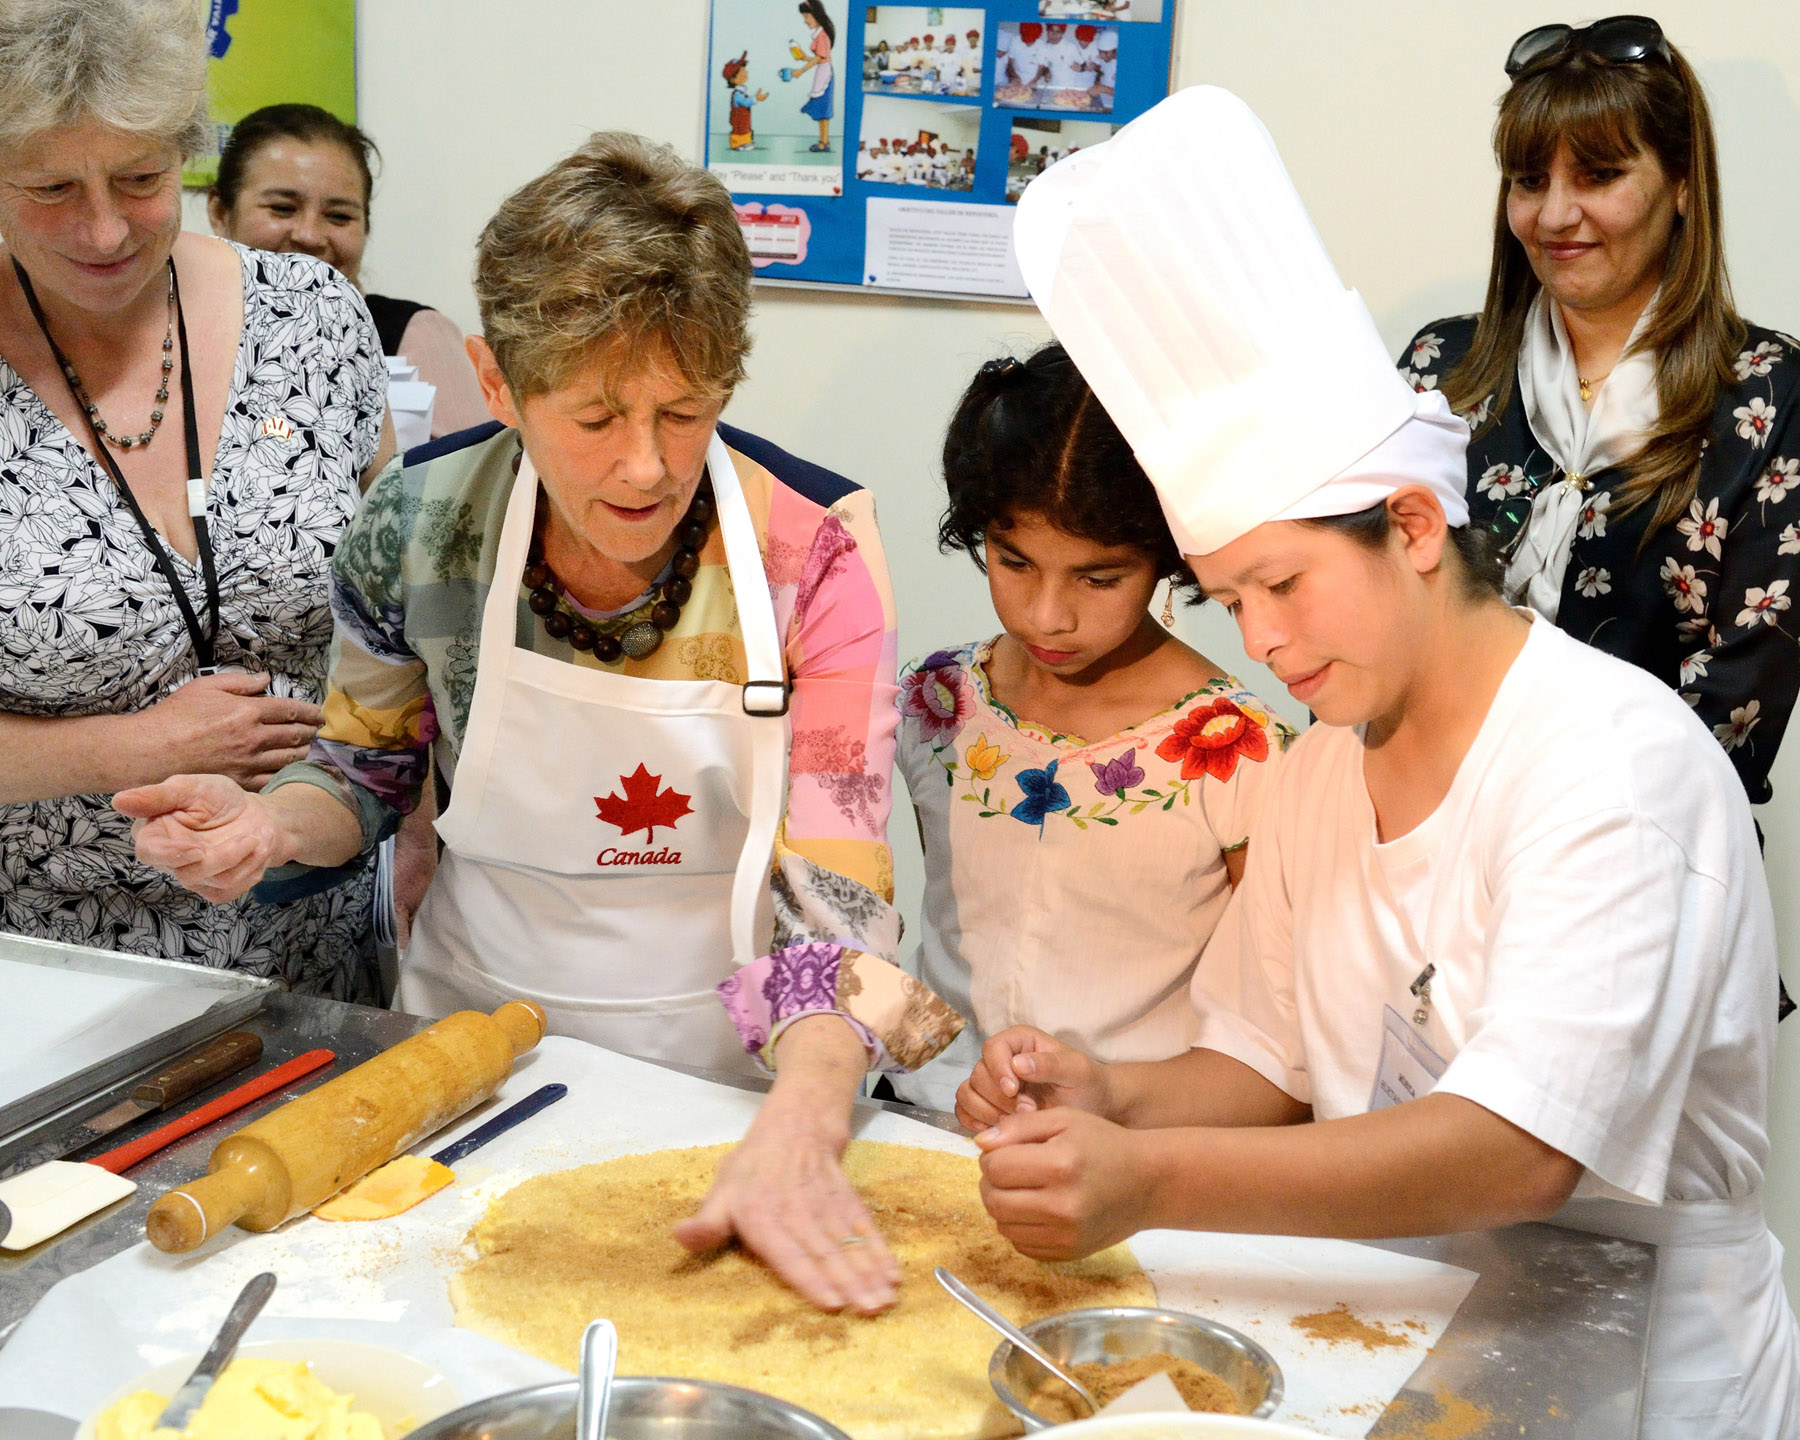 Her Excellency then visited the kitchen were she showed children how to make cinnamon buns.